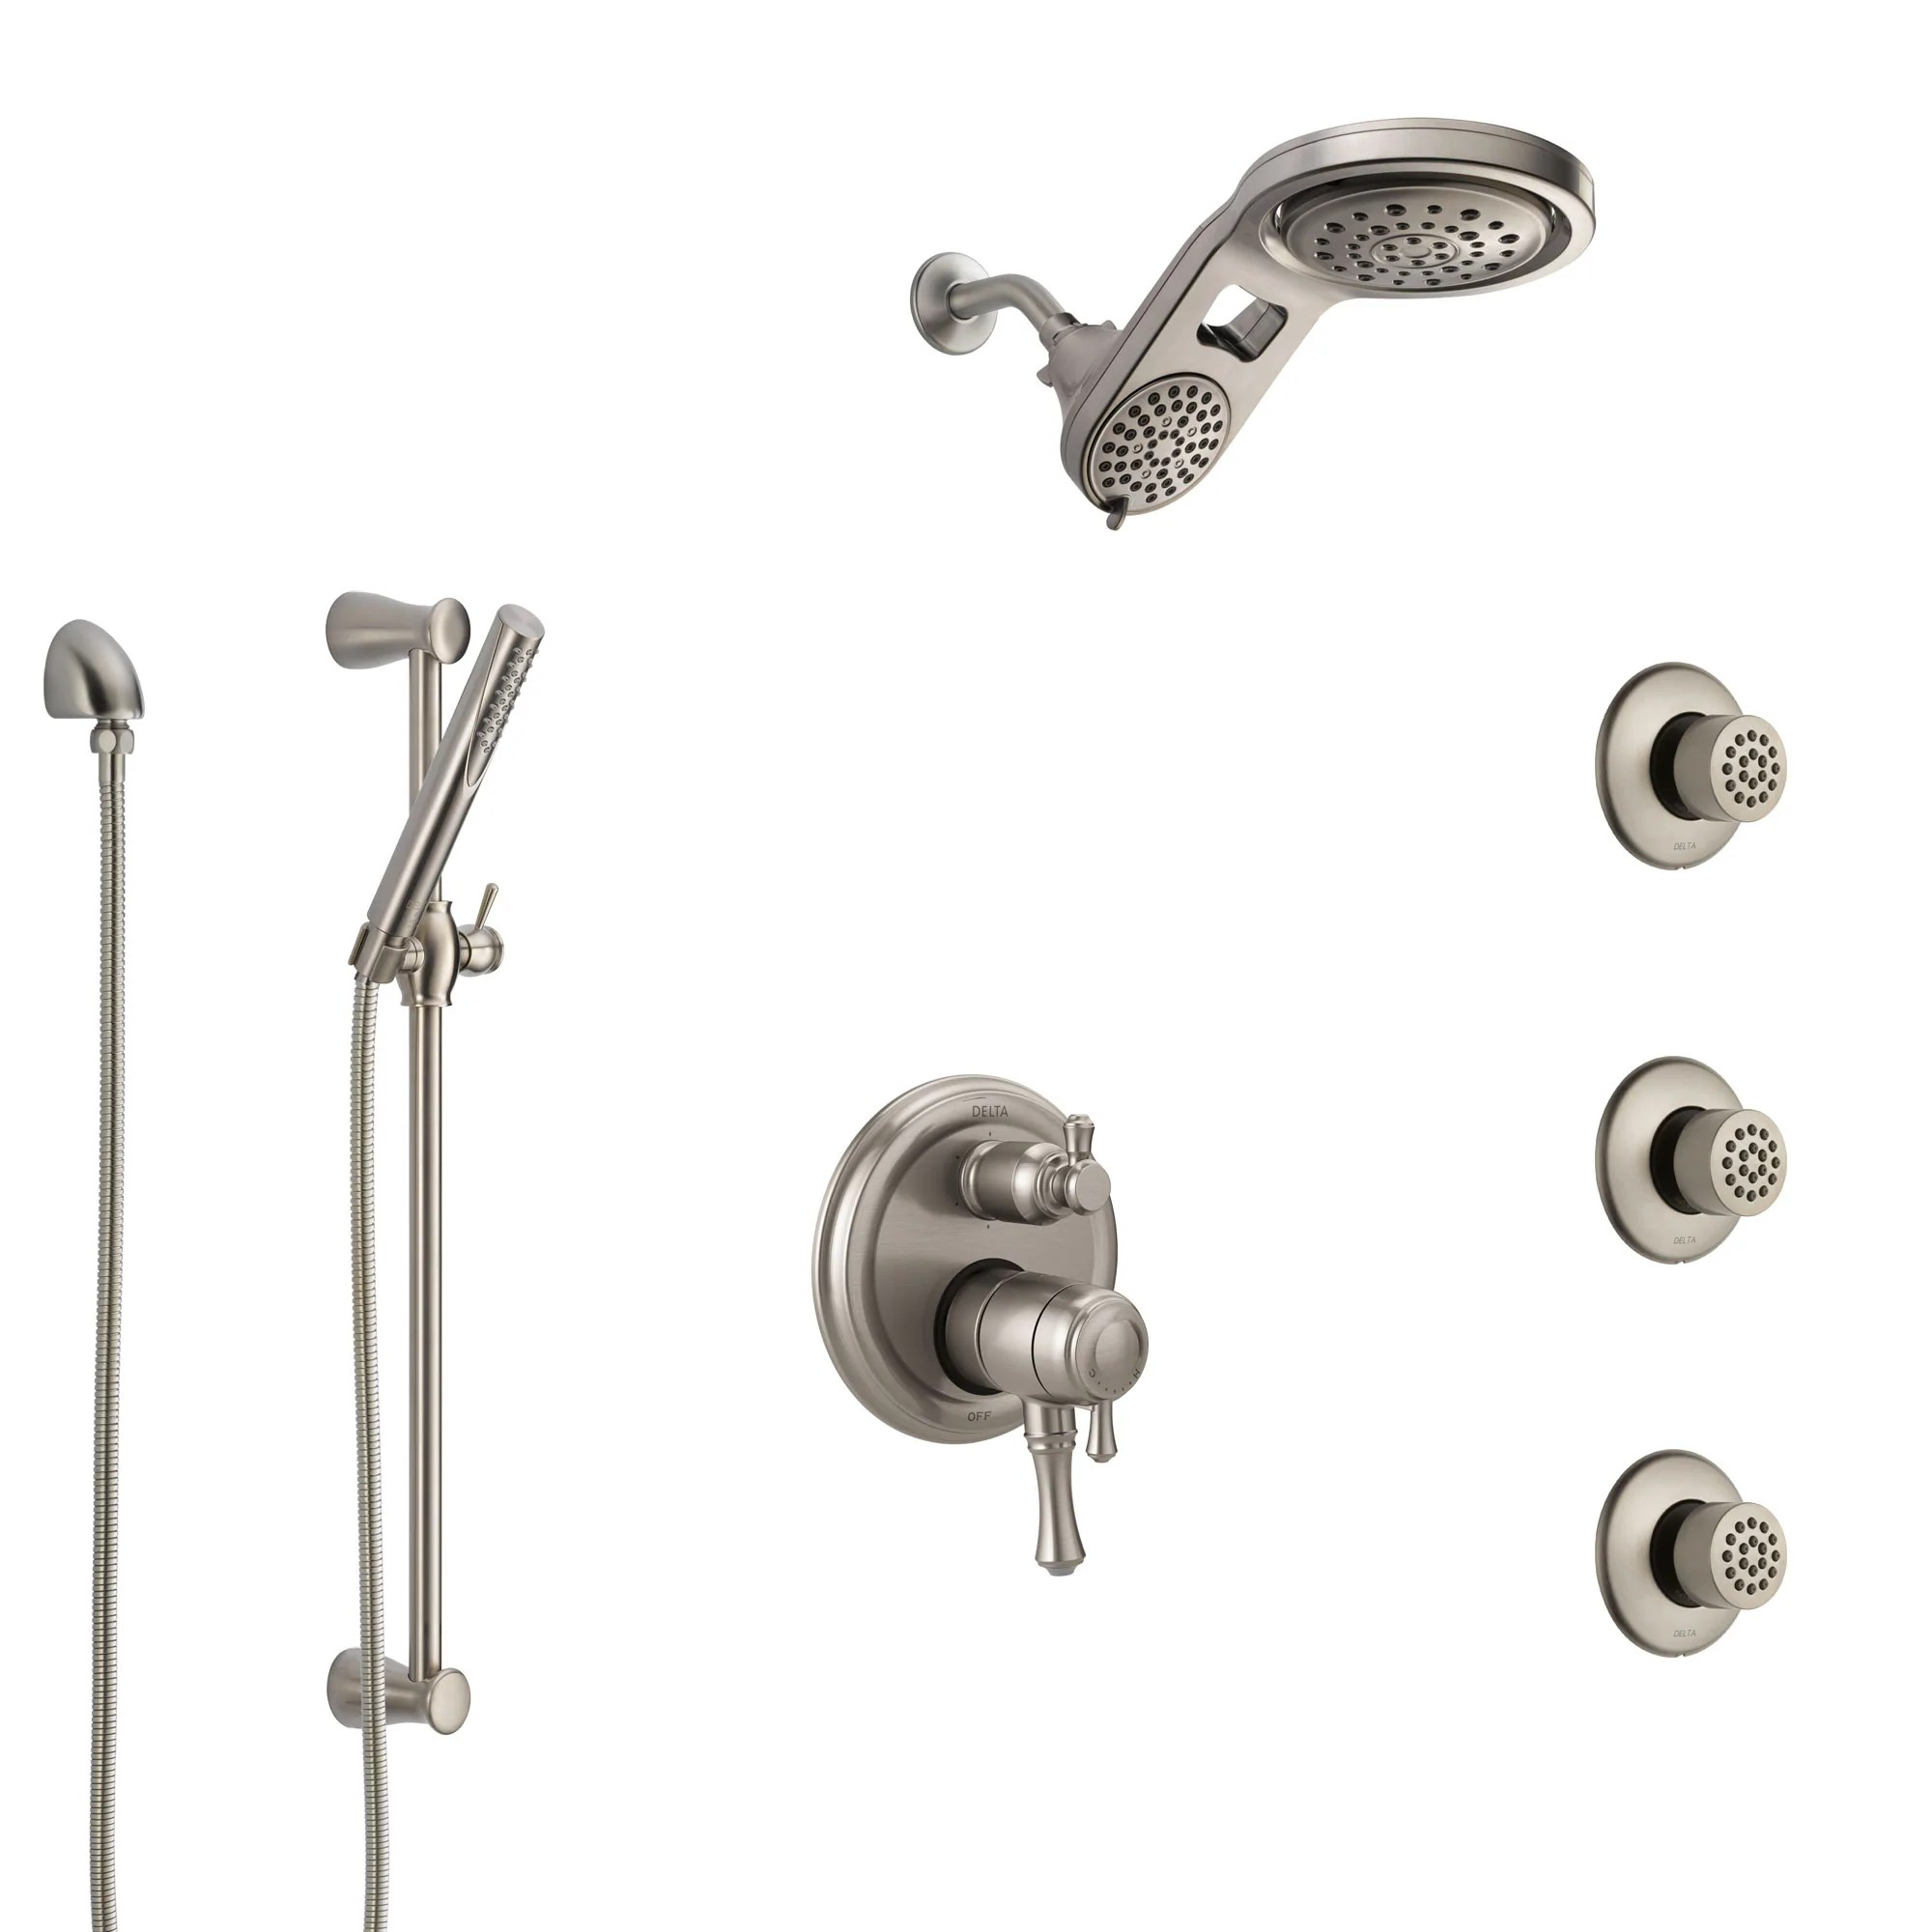 Delta Cassidy Dual Control Handle Stainless Steel Finish Integrated Diverter Shower System Dual Showerhead 3 Body Sprays And Hand Spray Ss27997ss11